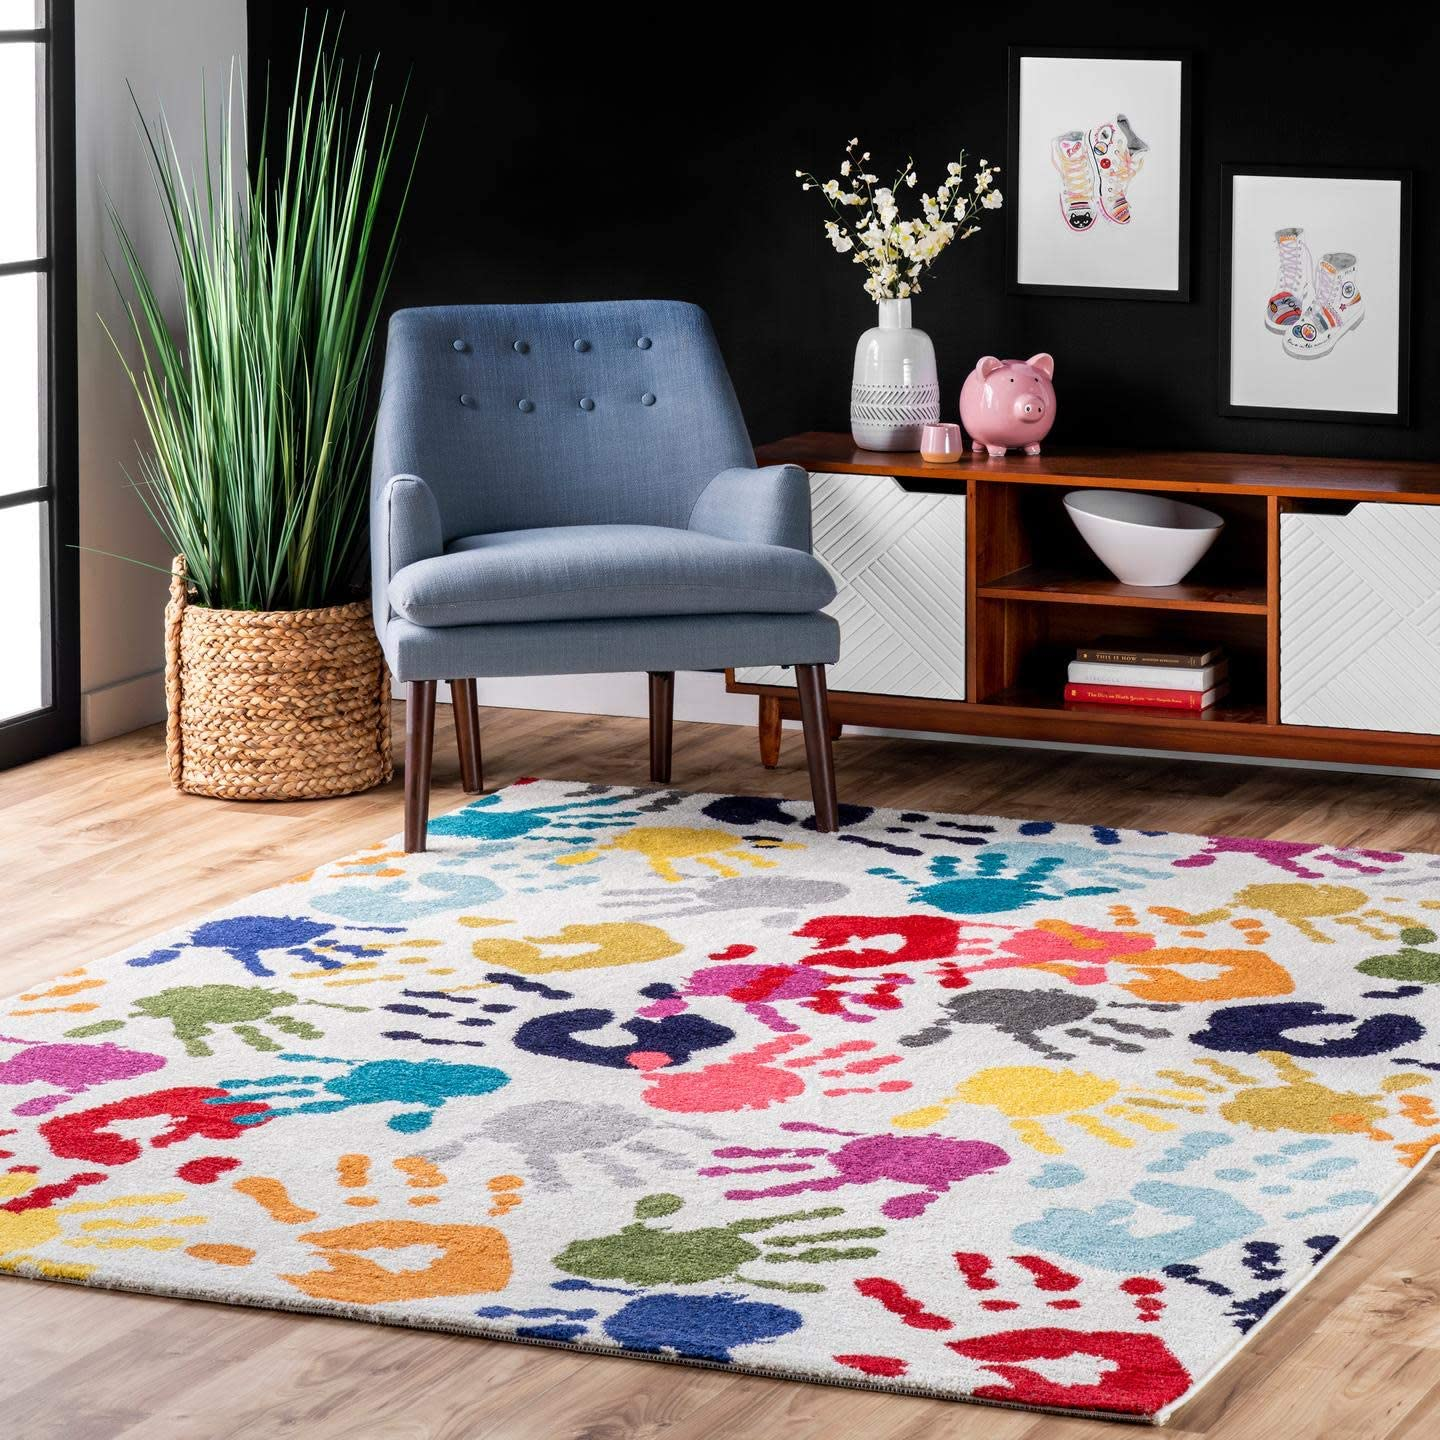 Amazon Com Nuloom Pinkie Handprint Nursery Kids Area Rug 5 X 8 Multi Furniture Decor